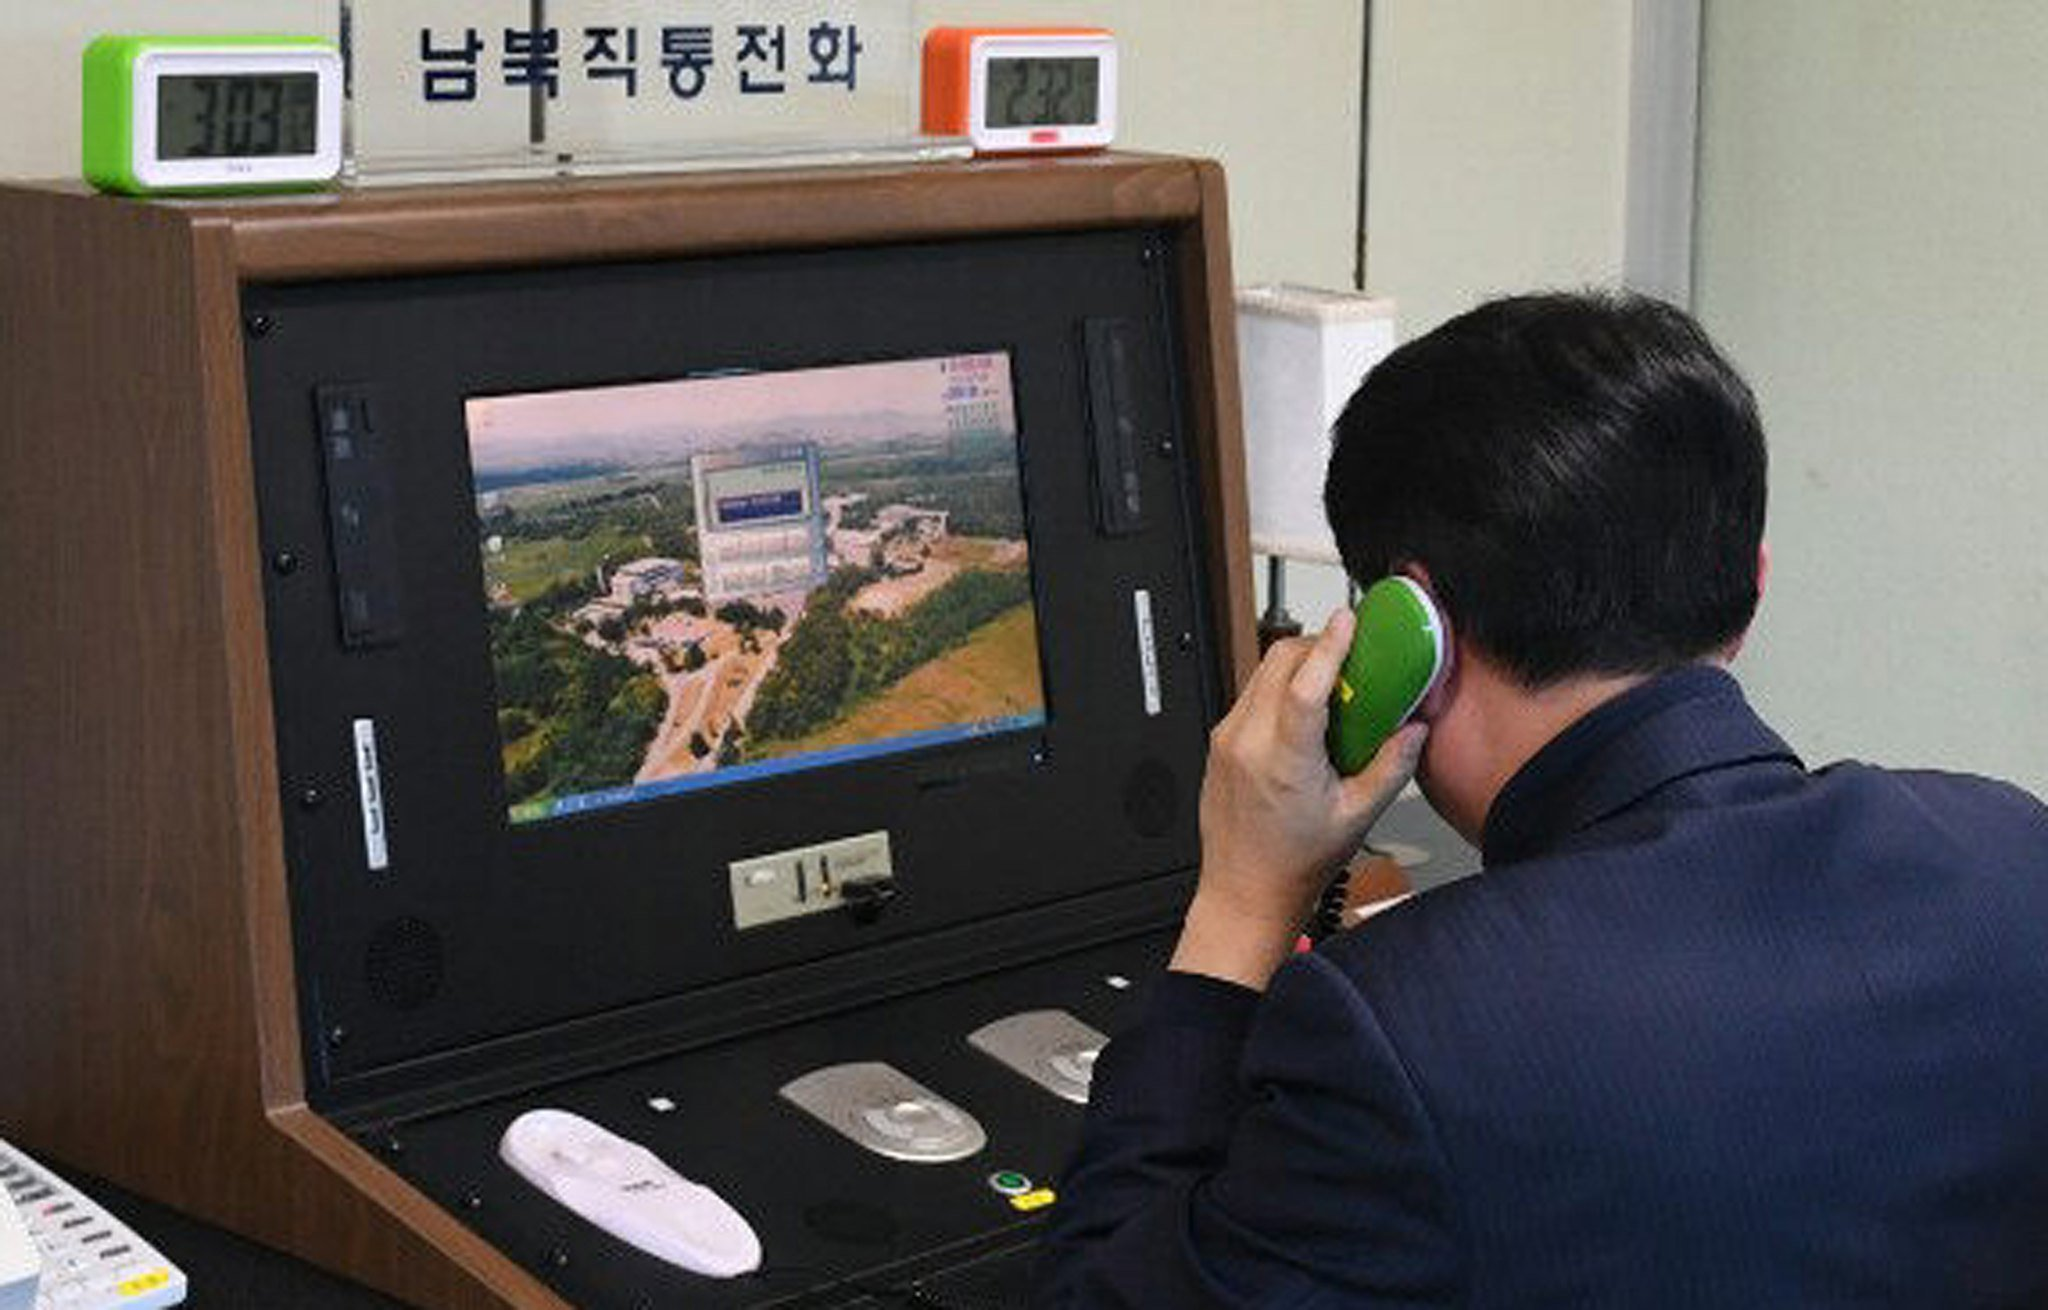 North Korea opens phone line to the south for the first time in two years